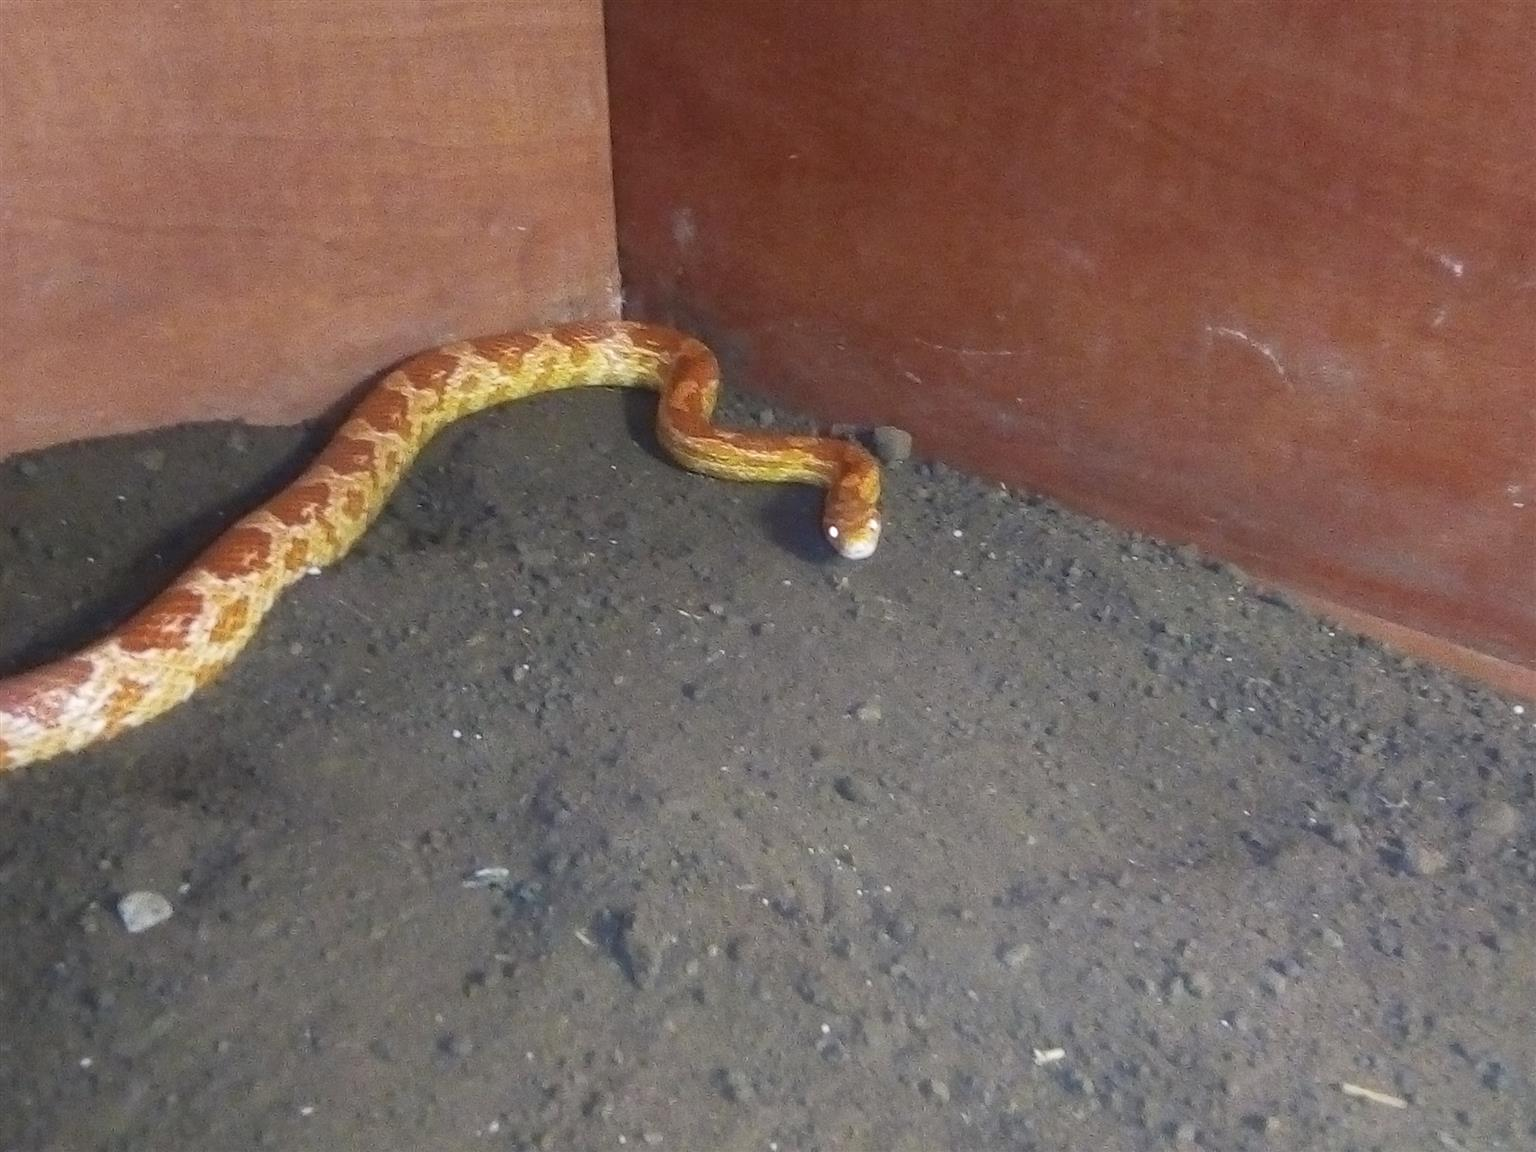 Corn snake with cage